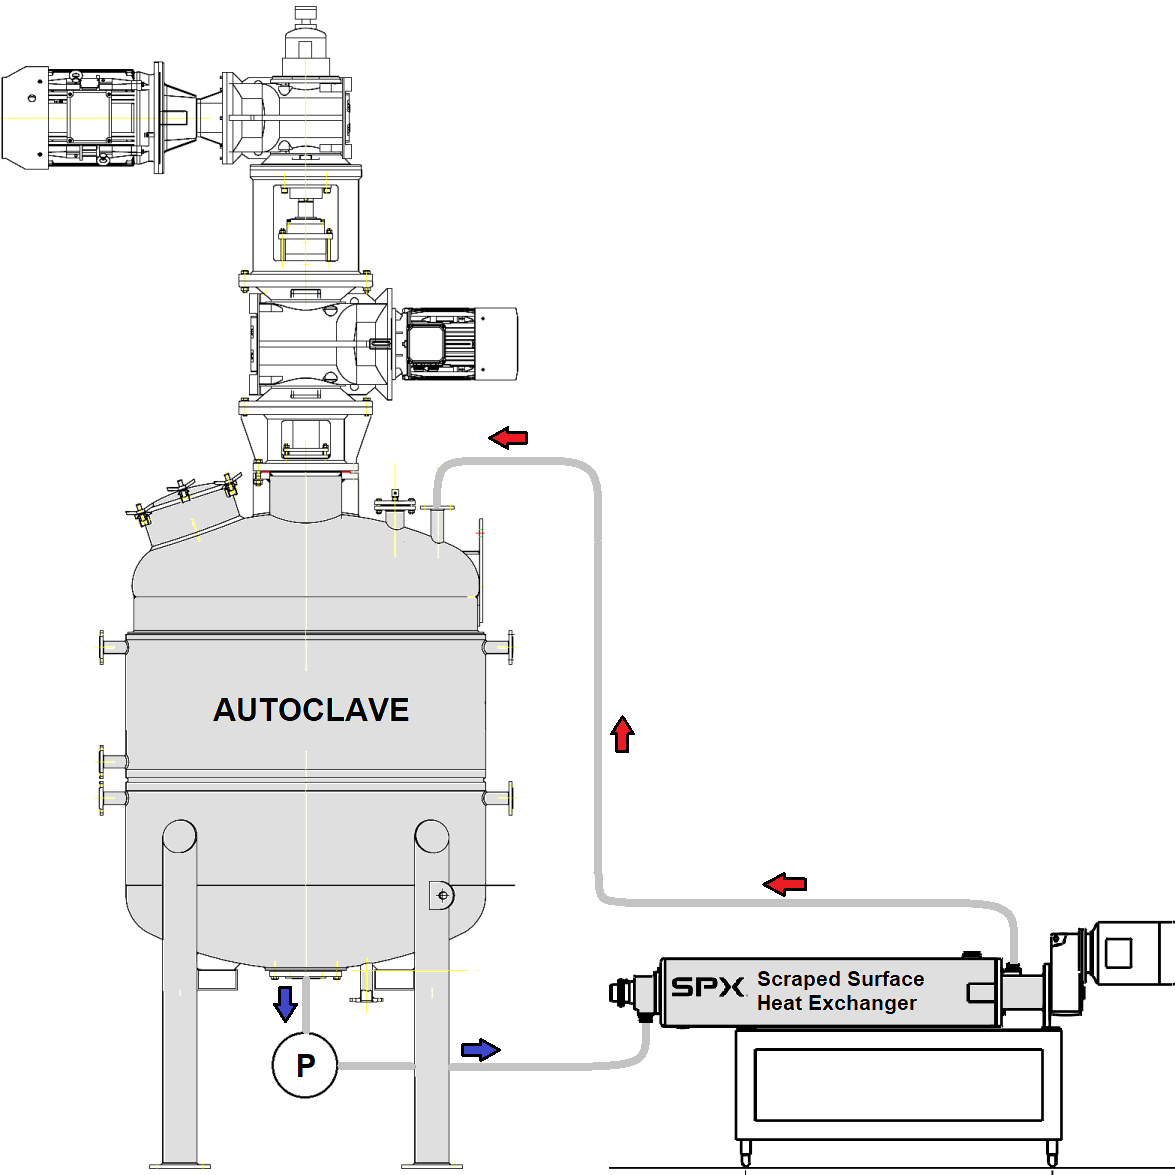 Autoclave with Scraped Surface Heat Exchanger